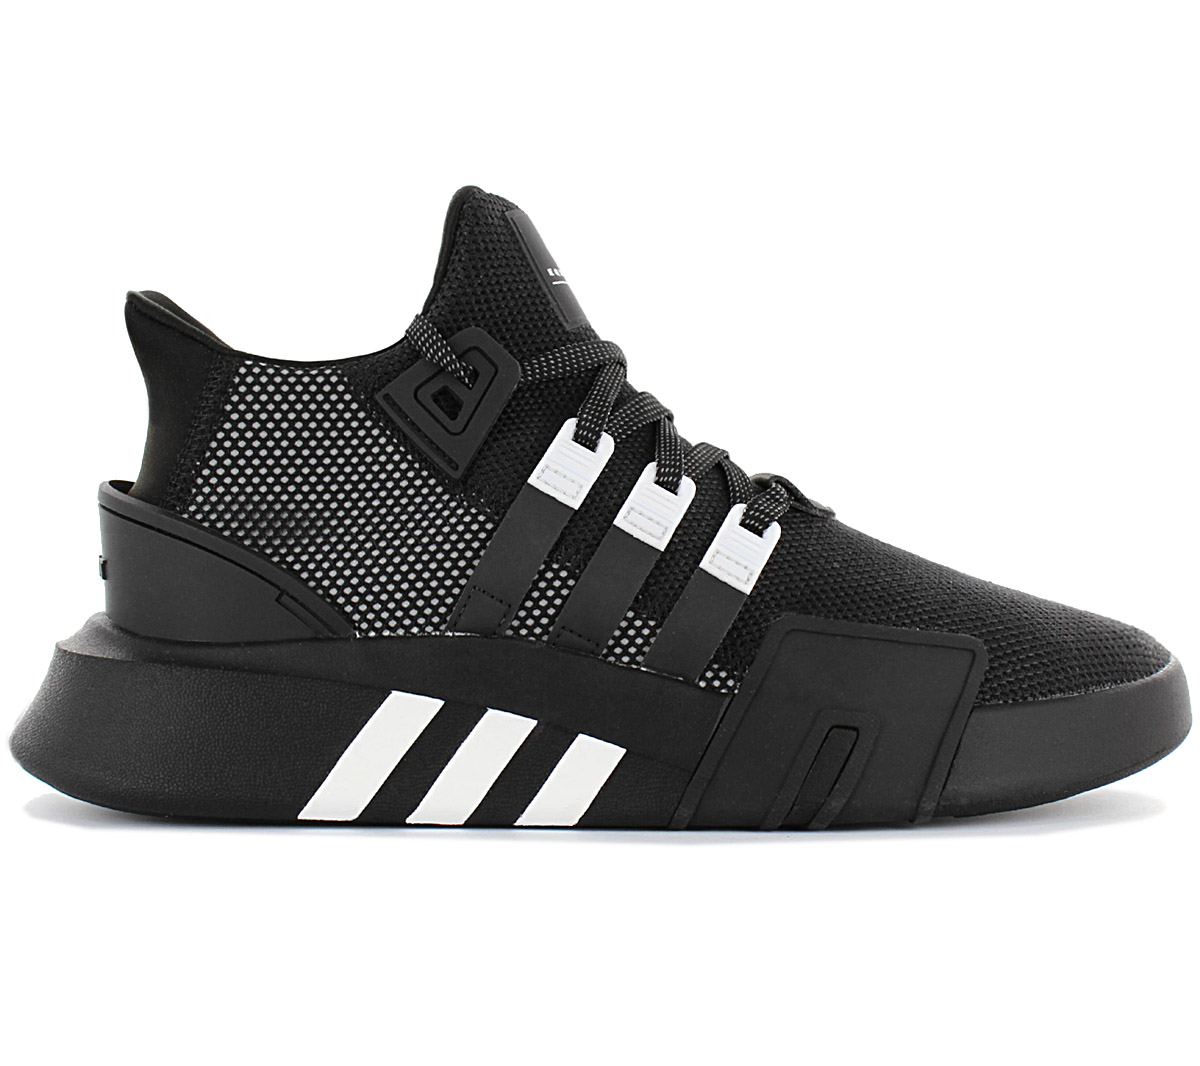 Details about Adidas Originals Eqt Bask Adv Men's Sneaker BD7773 Black Shoes Trainers New